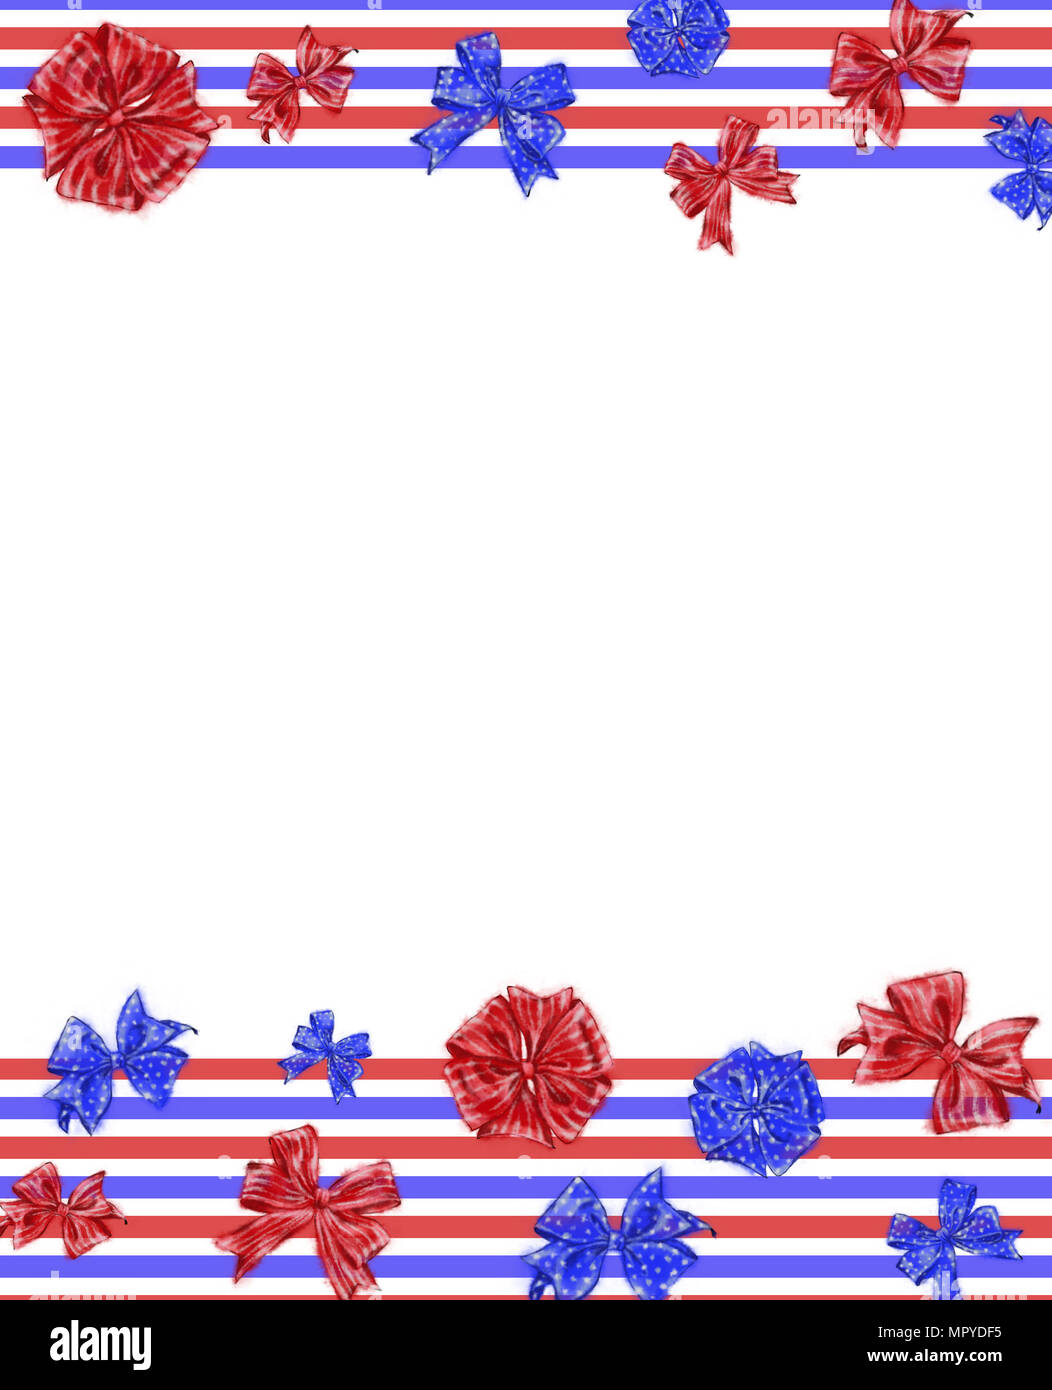 independence day template with horizontal tricolor ribbons and